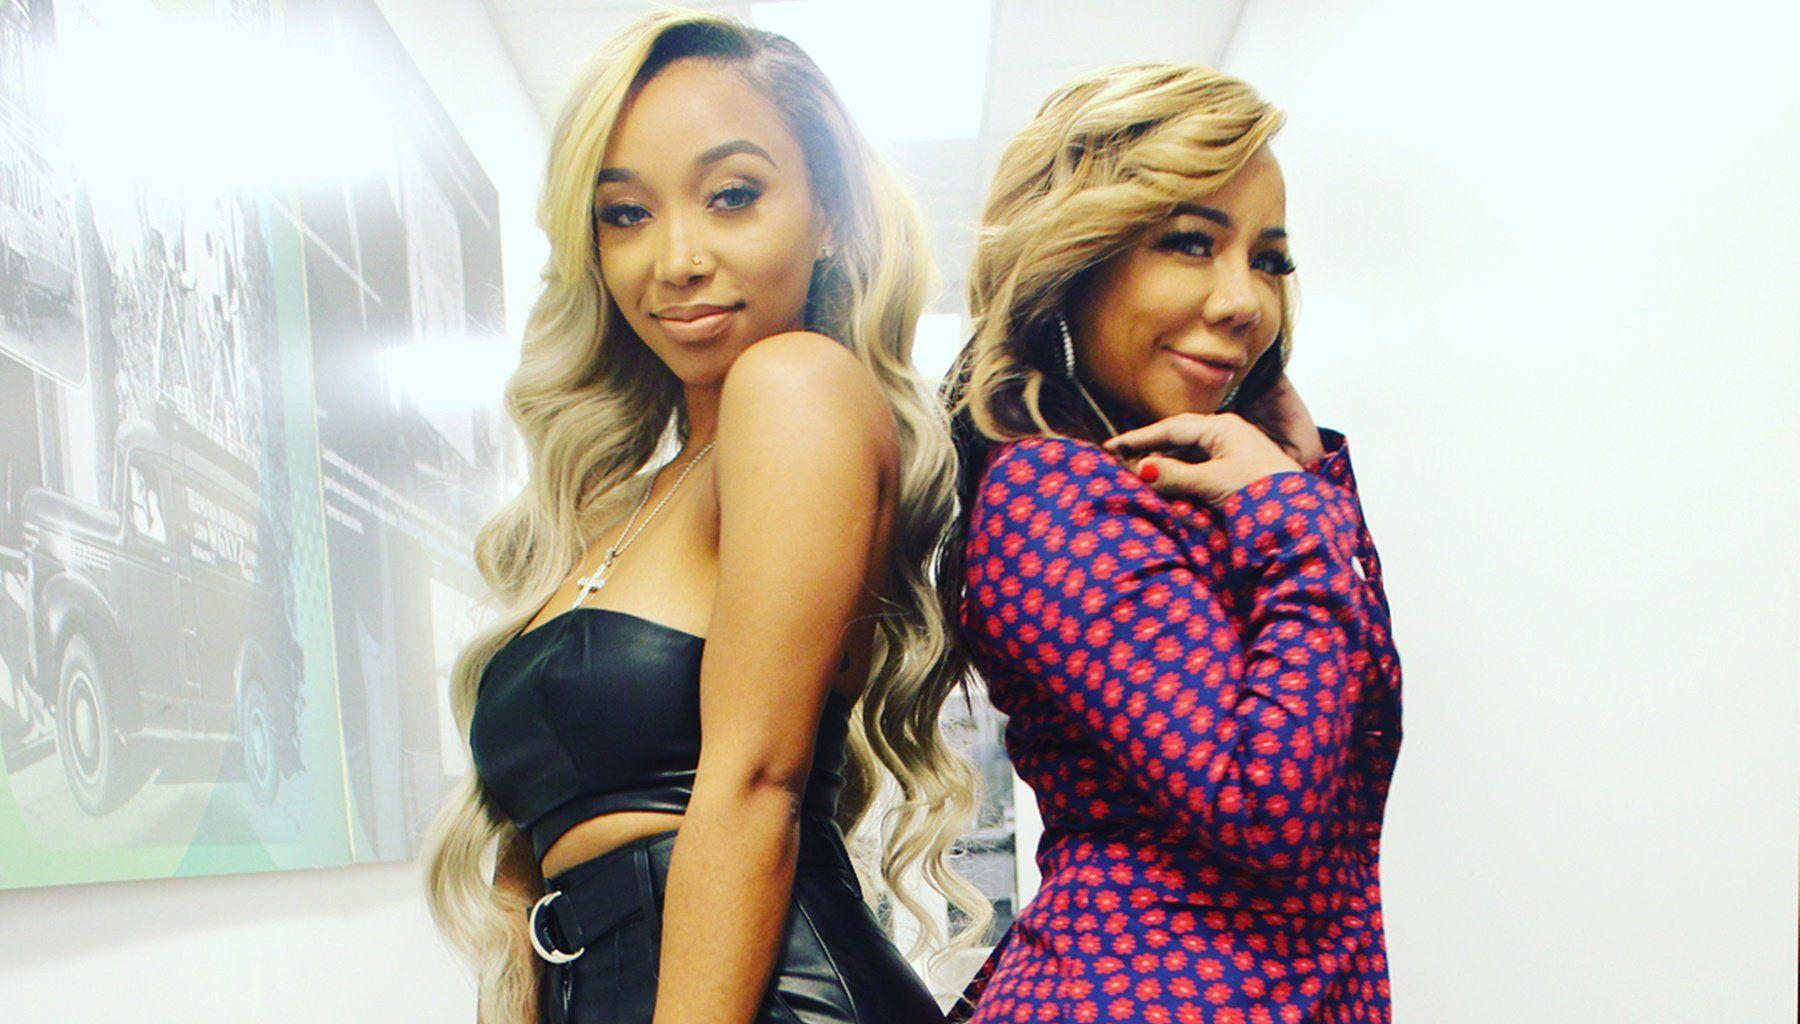 Tiny Harris Is A Woman Full Of Ambition In Her Latest Pics - She's Rocking A Little Black Dress